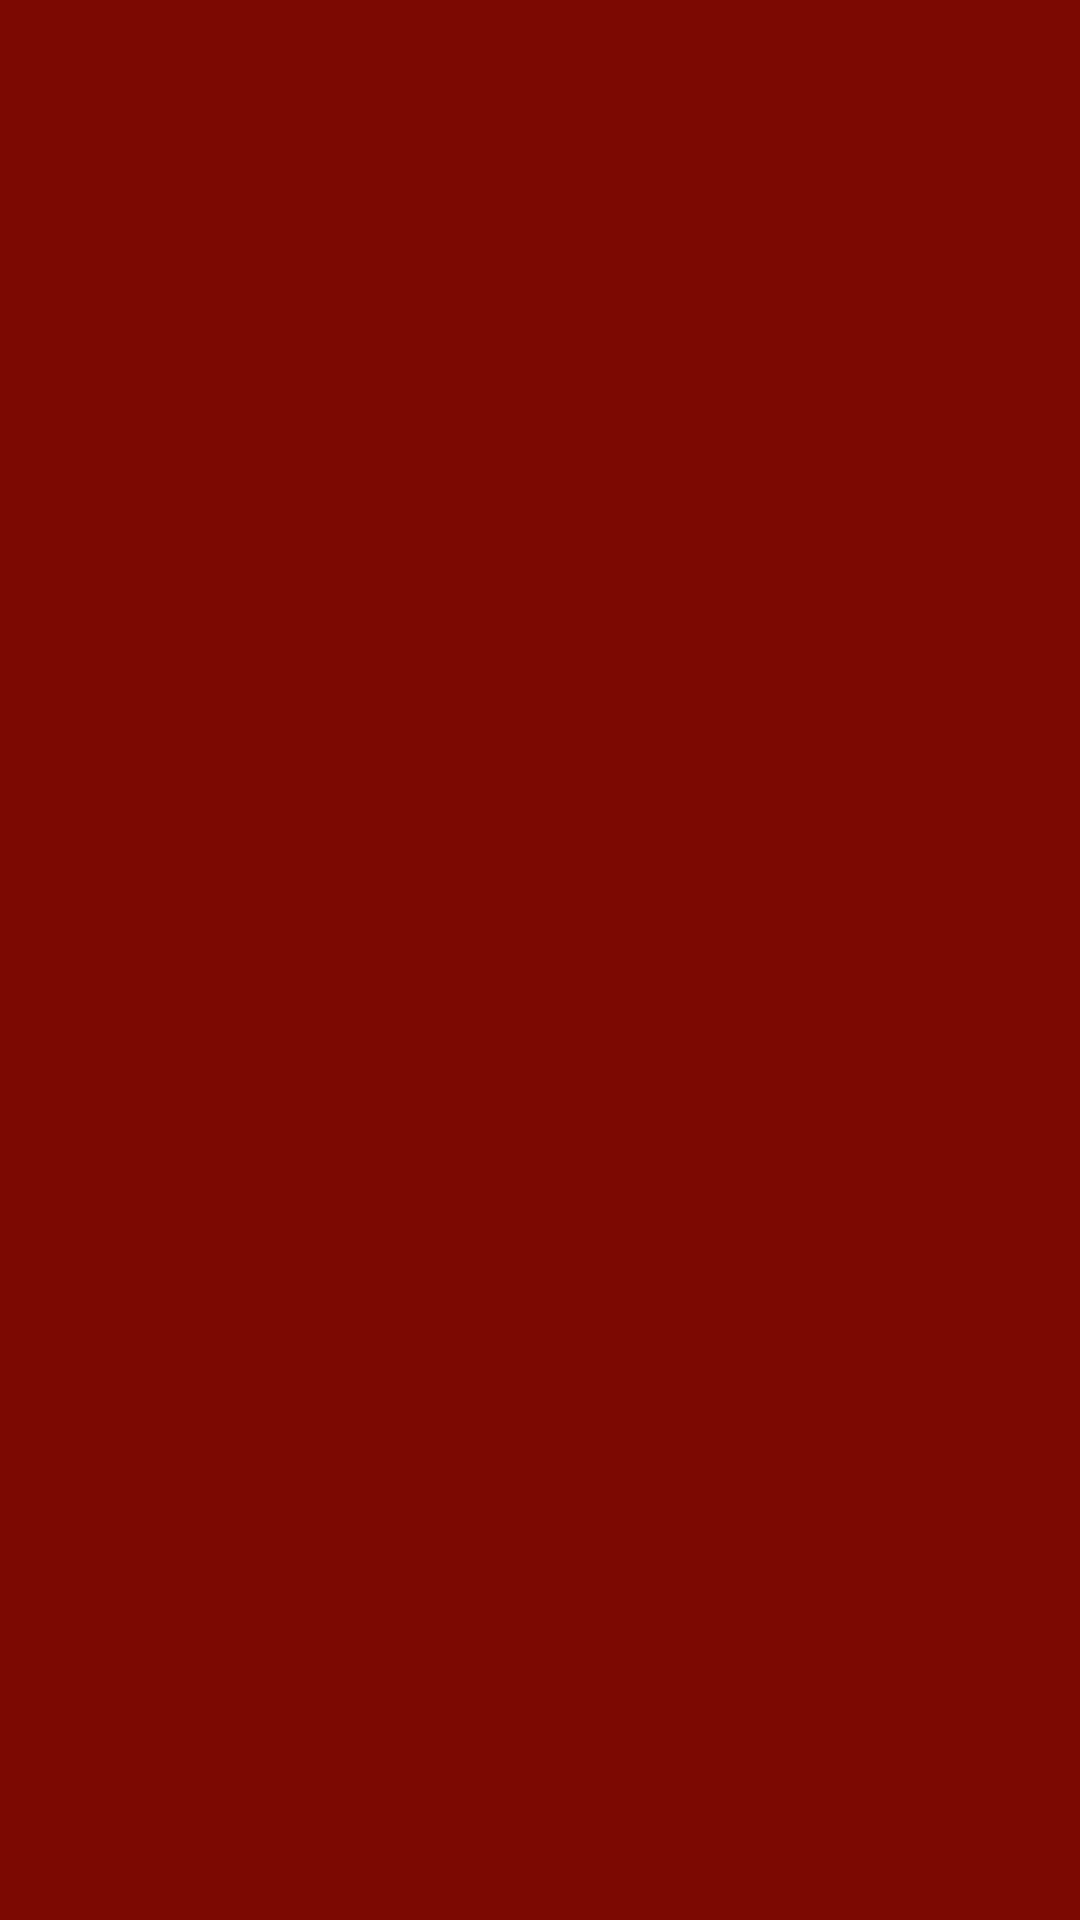 1080x1920 Barn Red Solid Color Background